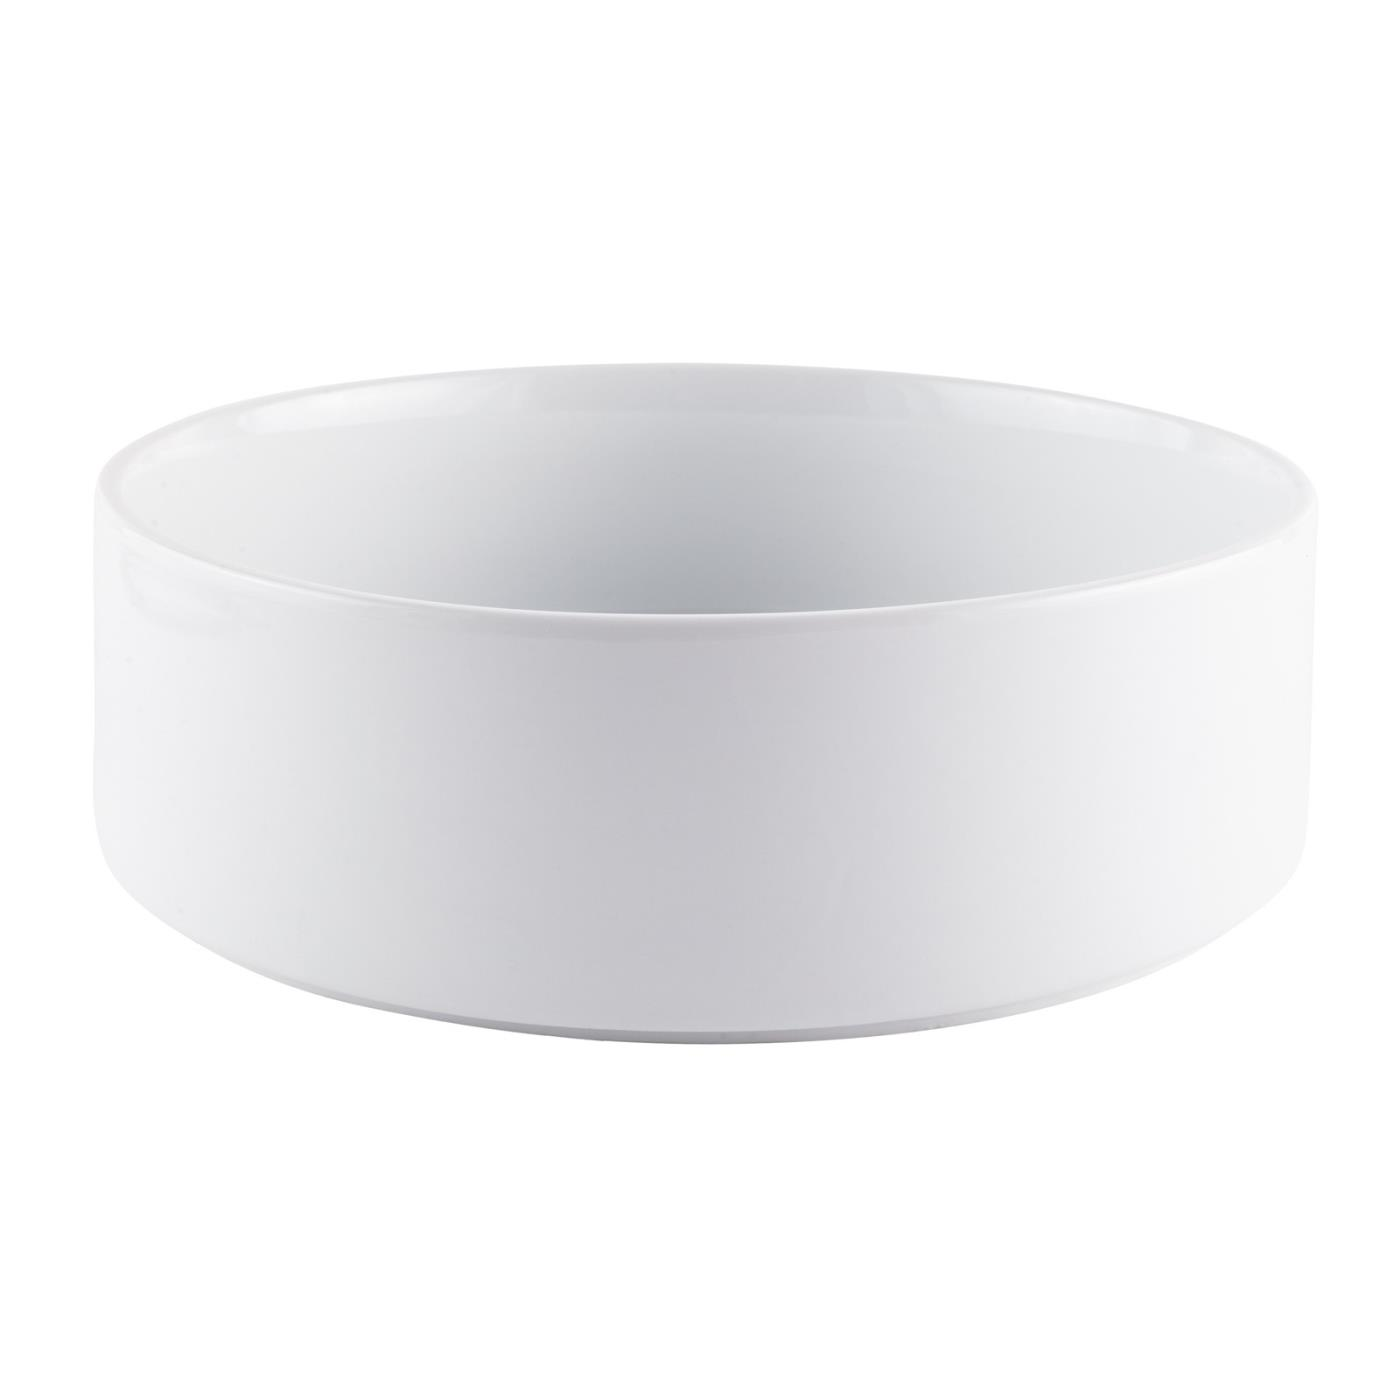 White Ceramic Straight Sided Bowl - 12""